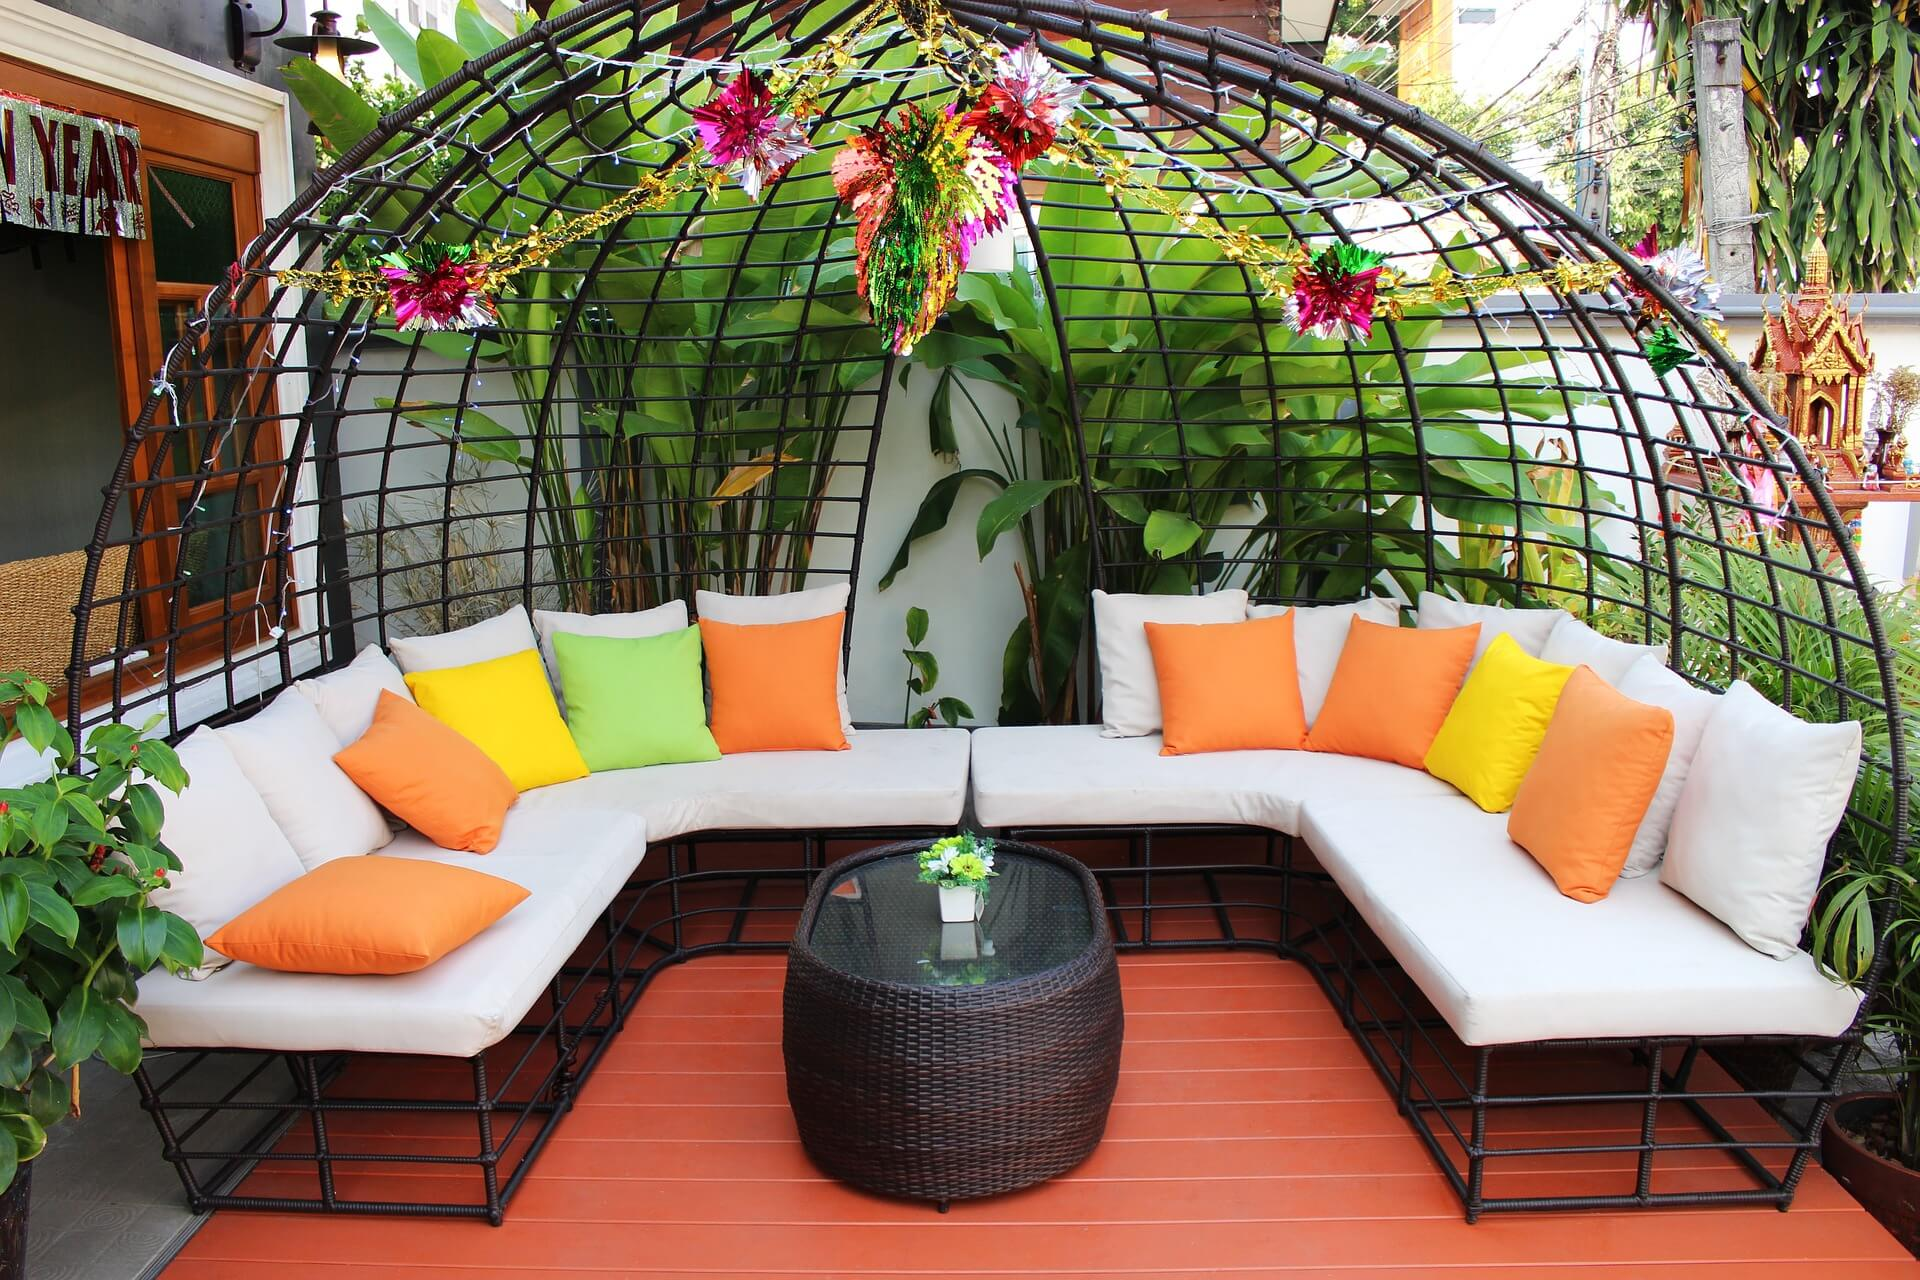 A brightly colored patio with orange flooring, and a large U shaped seating area